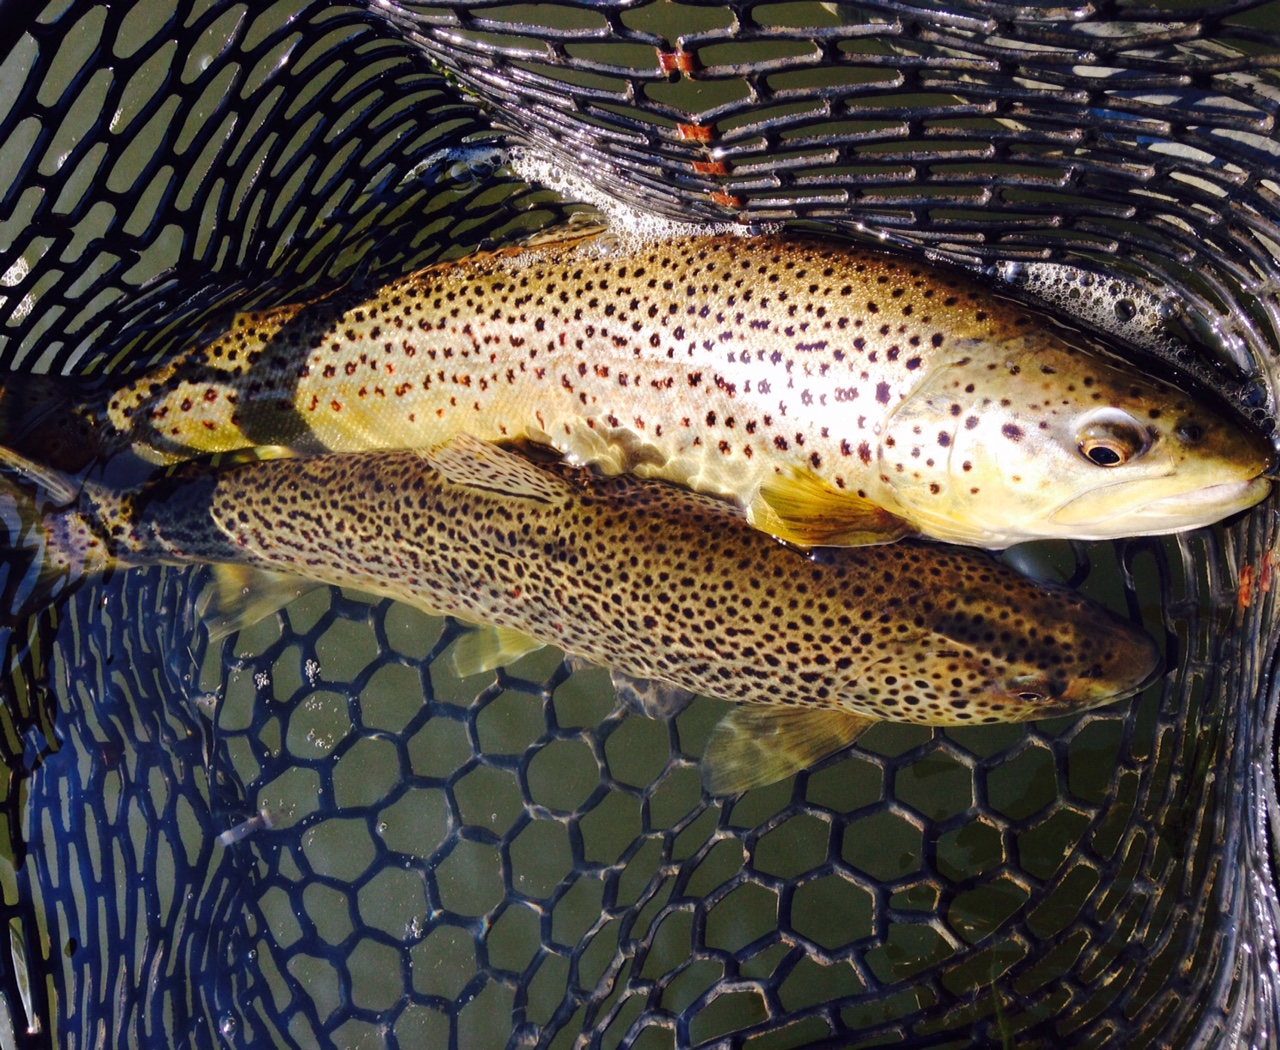 09/19/15 Dan B. and Guide Evan P.double up on Brown trout!